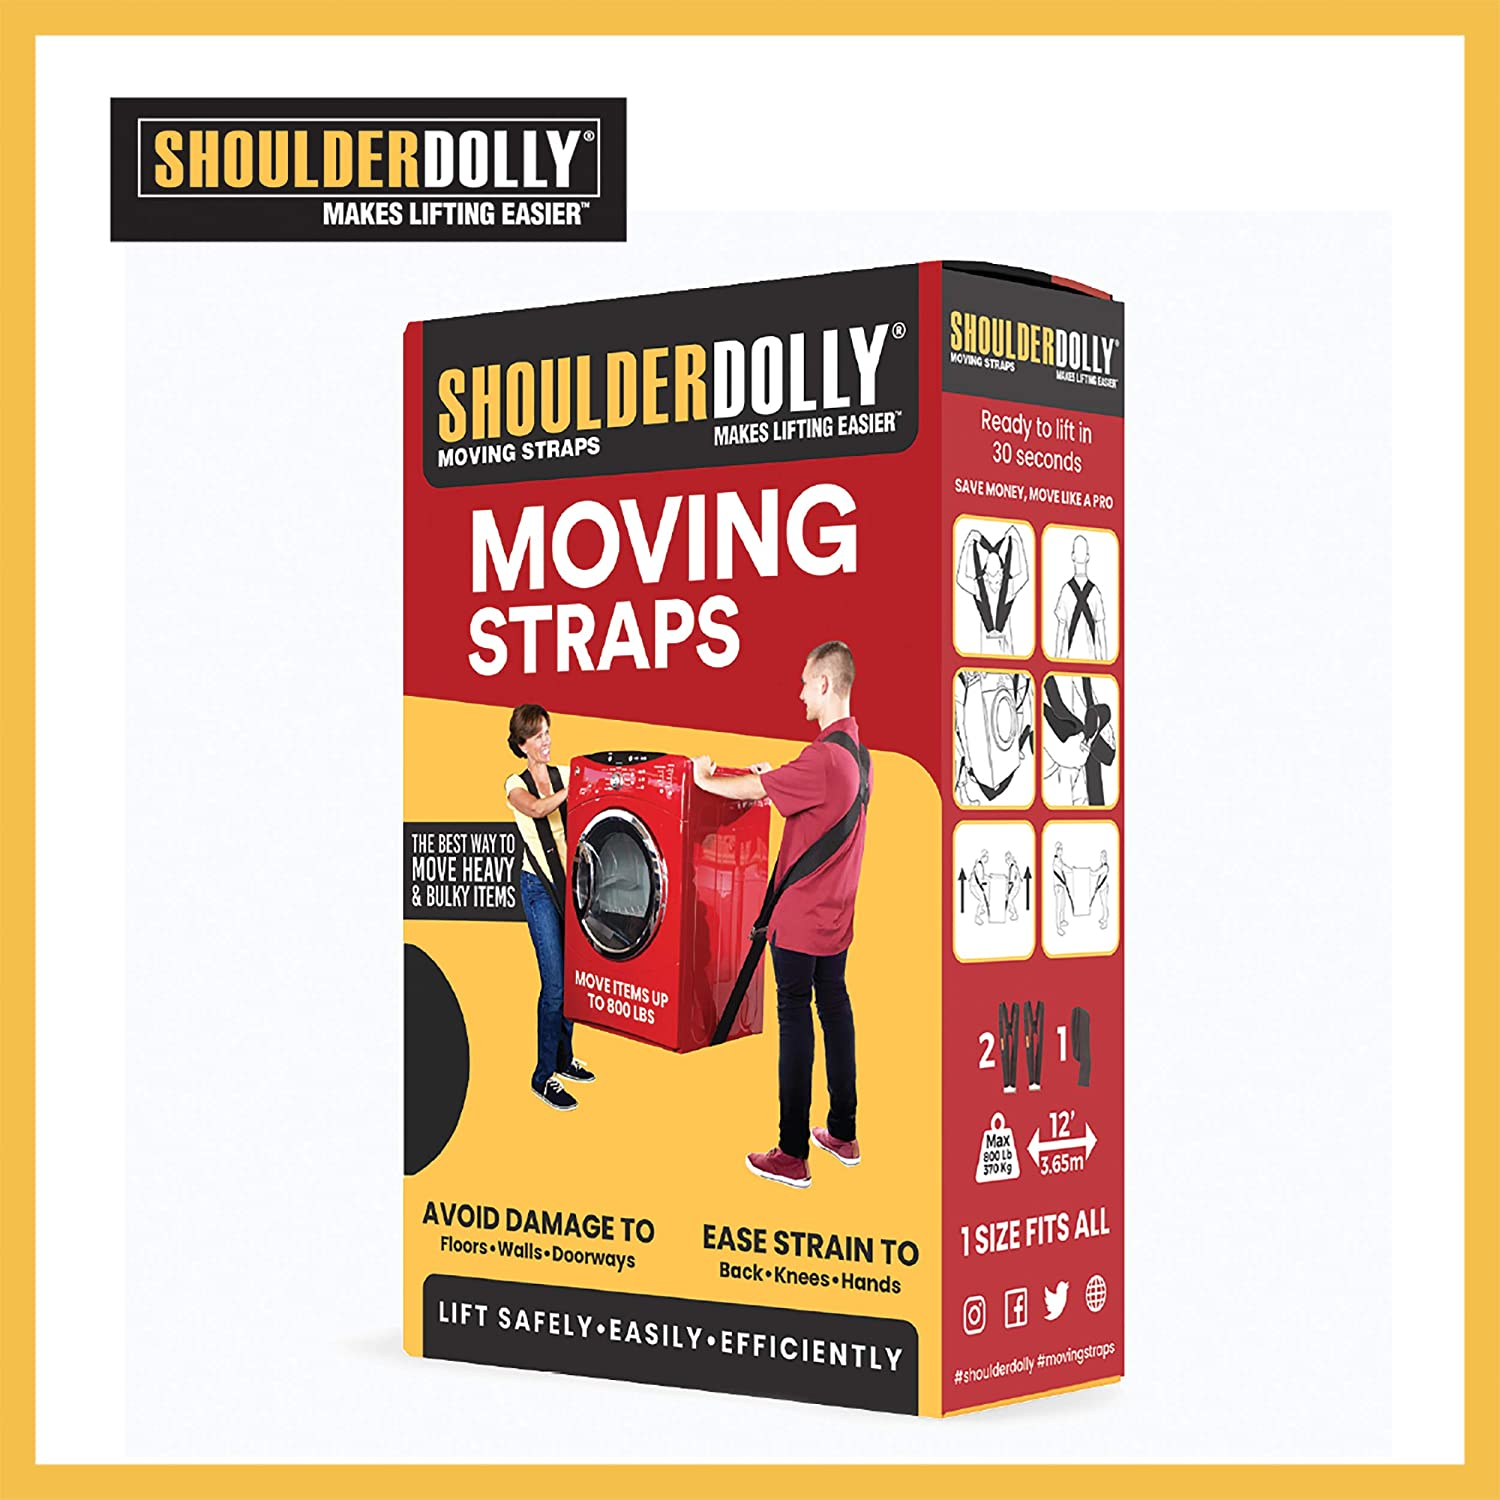 Shoulder Dolly Moving Straps - Lifting Strap for 2 Movers - Move, Lift, Carry, And Secure Furniture, Appliances, Heavy, Bulky Objects Safely, Efficiently, More Easily Like The Pros - Essential Moving Supplies - LD1000